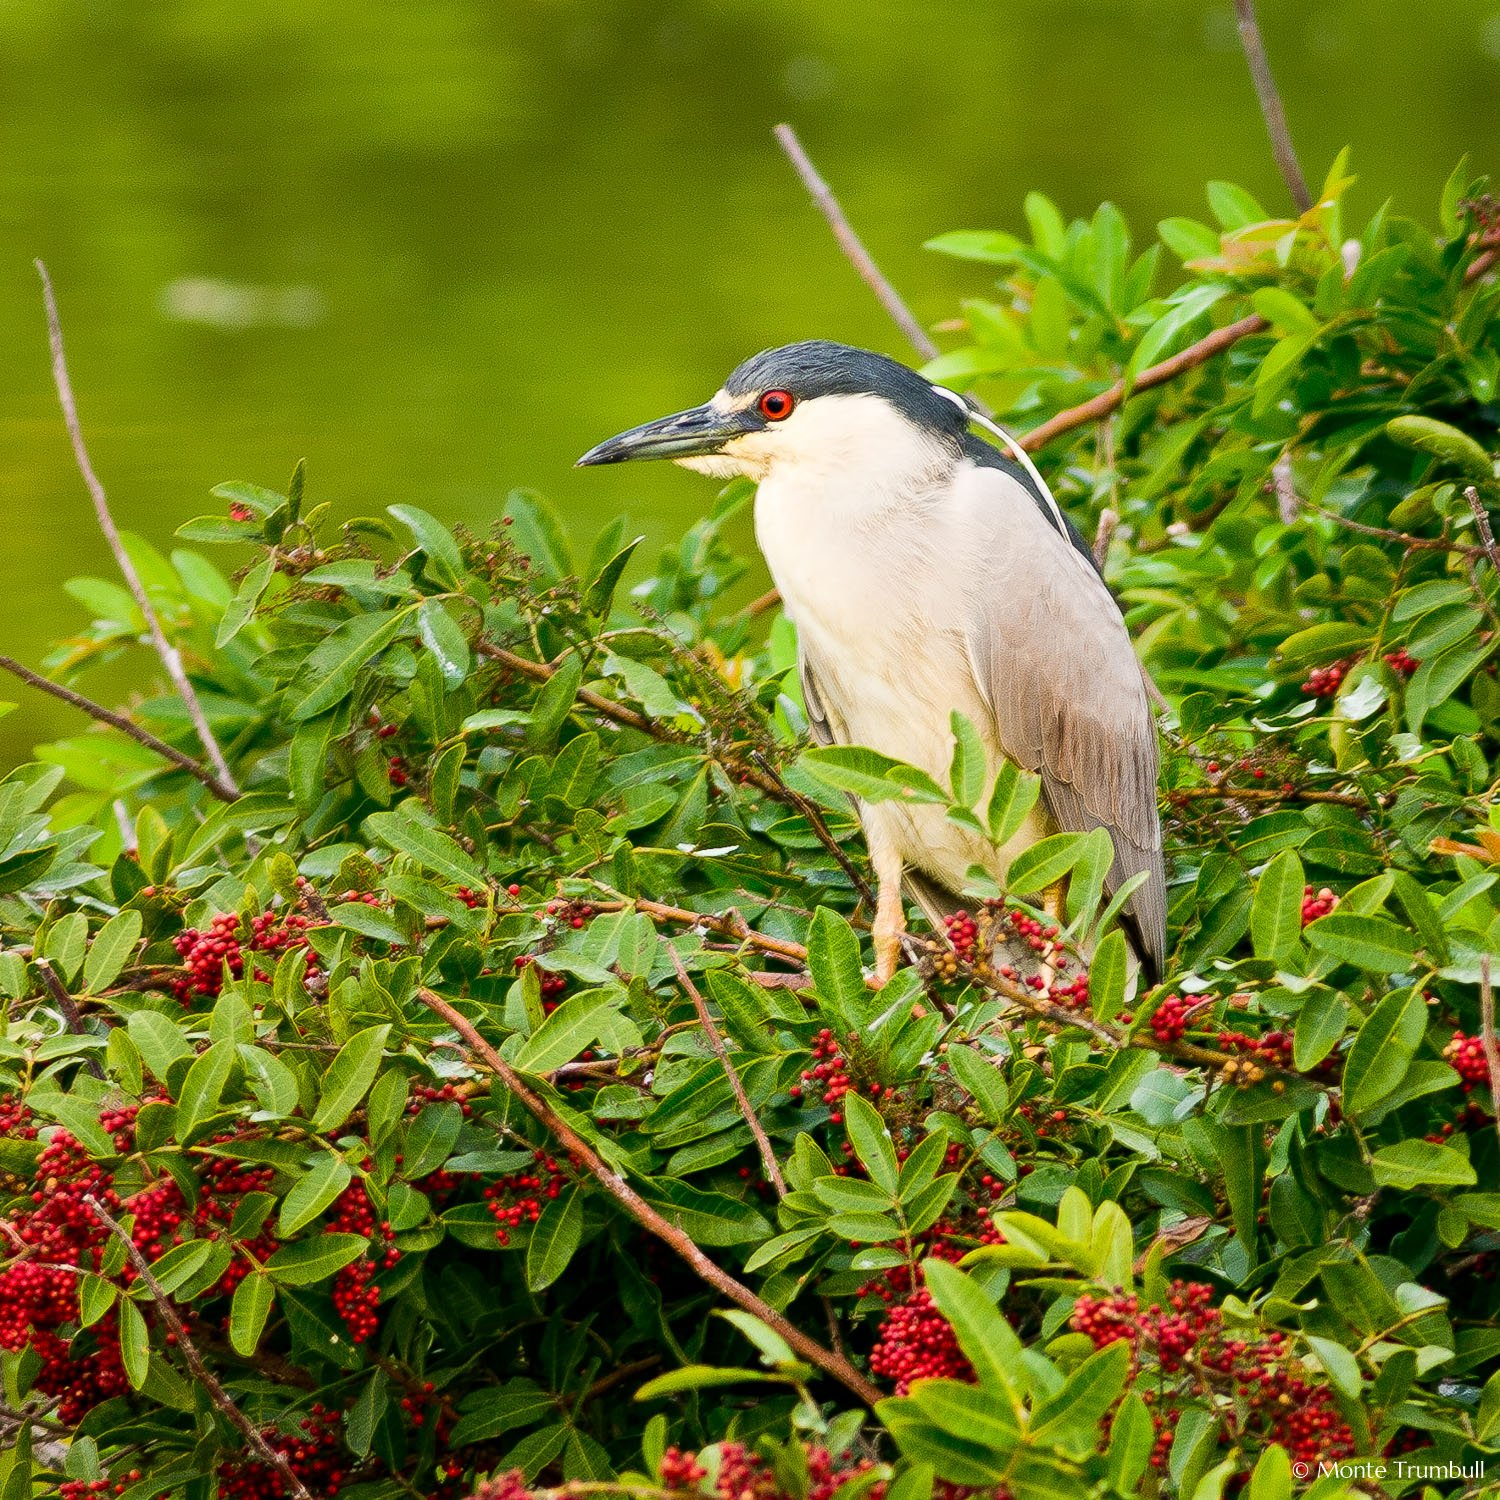 MT-20060303-063914-0026-Florida-Venice-Rookery-black-crowned-night-heron.jpg